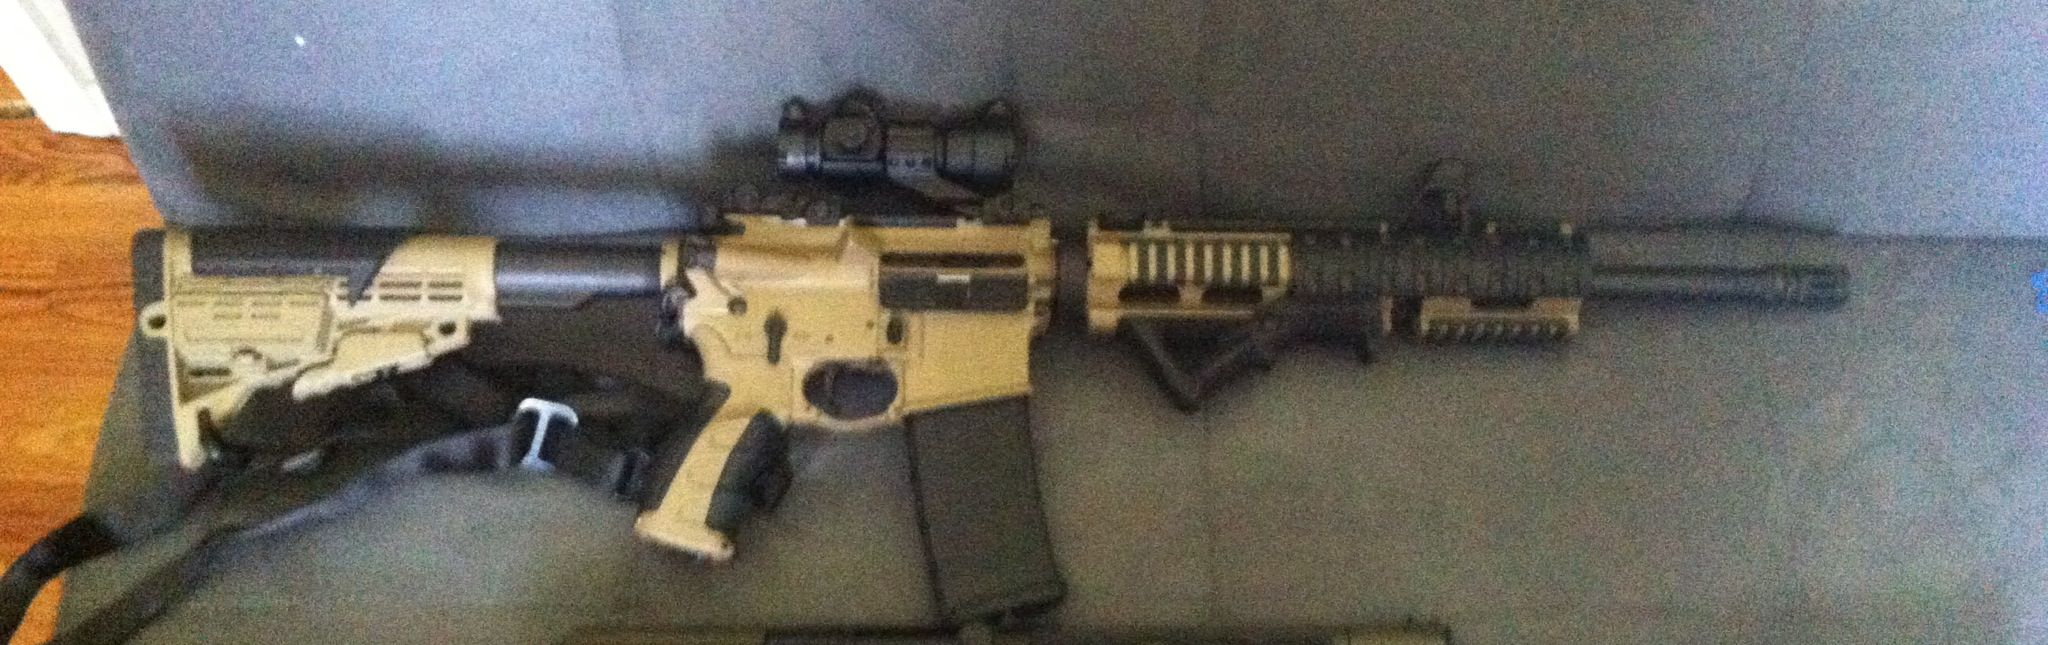 Ar 15 chambered in 7.62x39,spikes tactical lower ambi